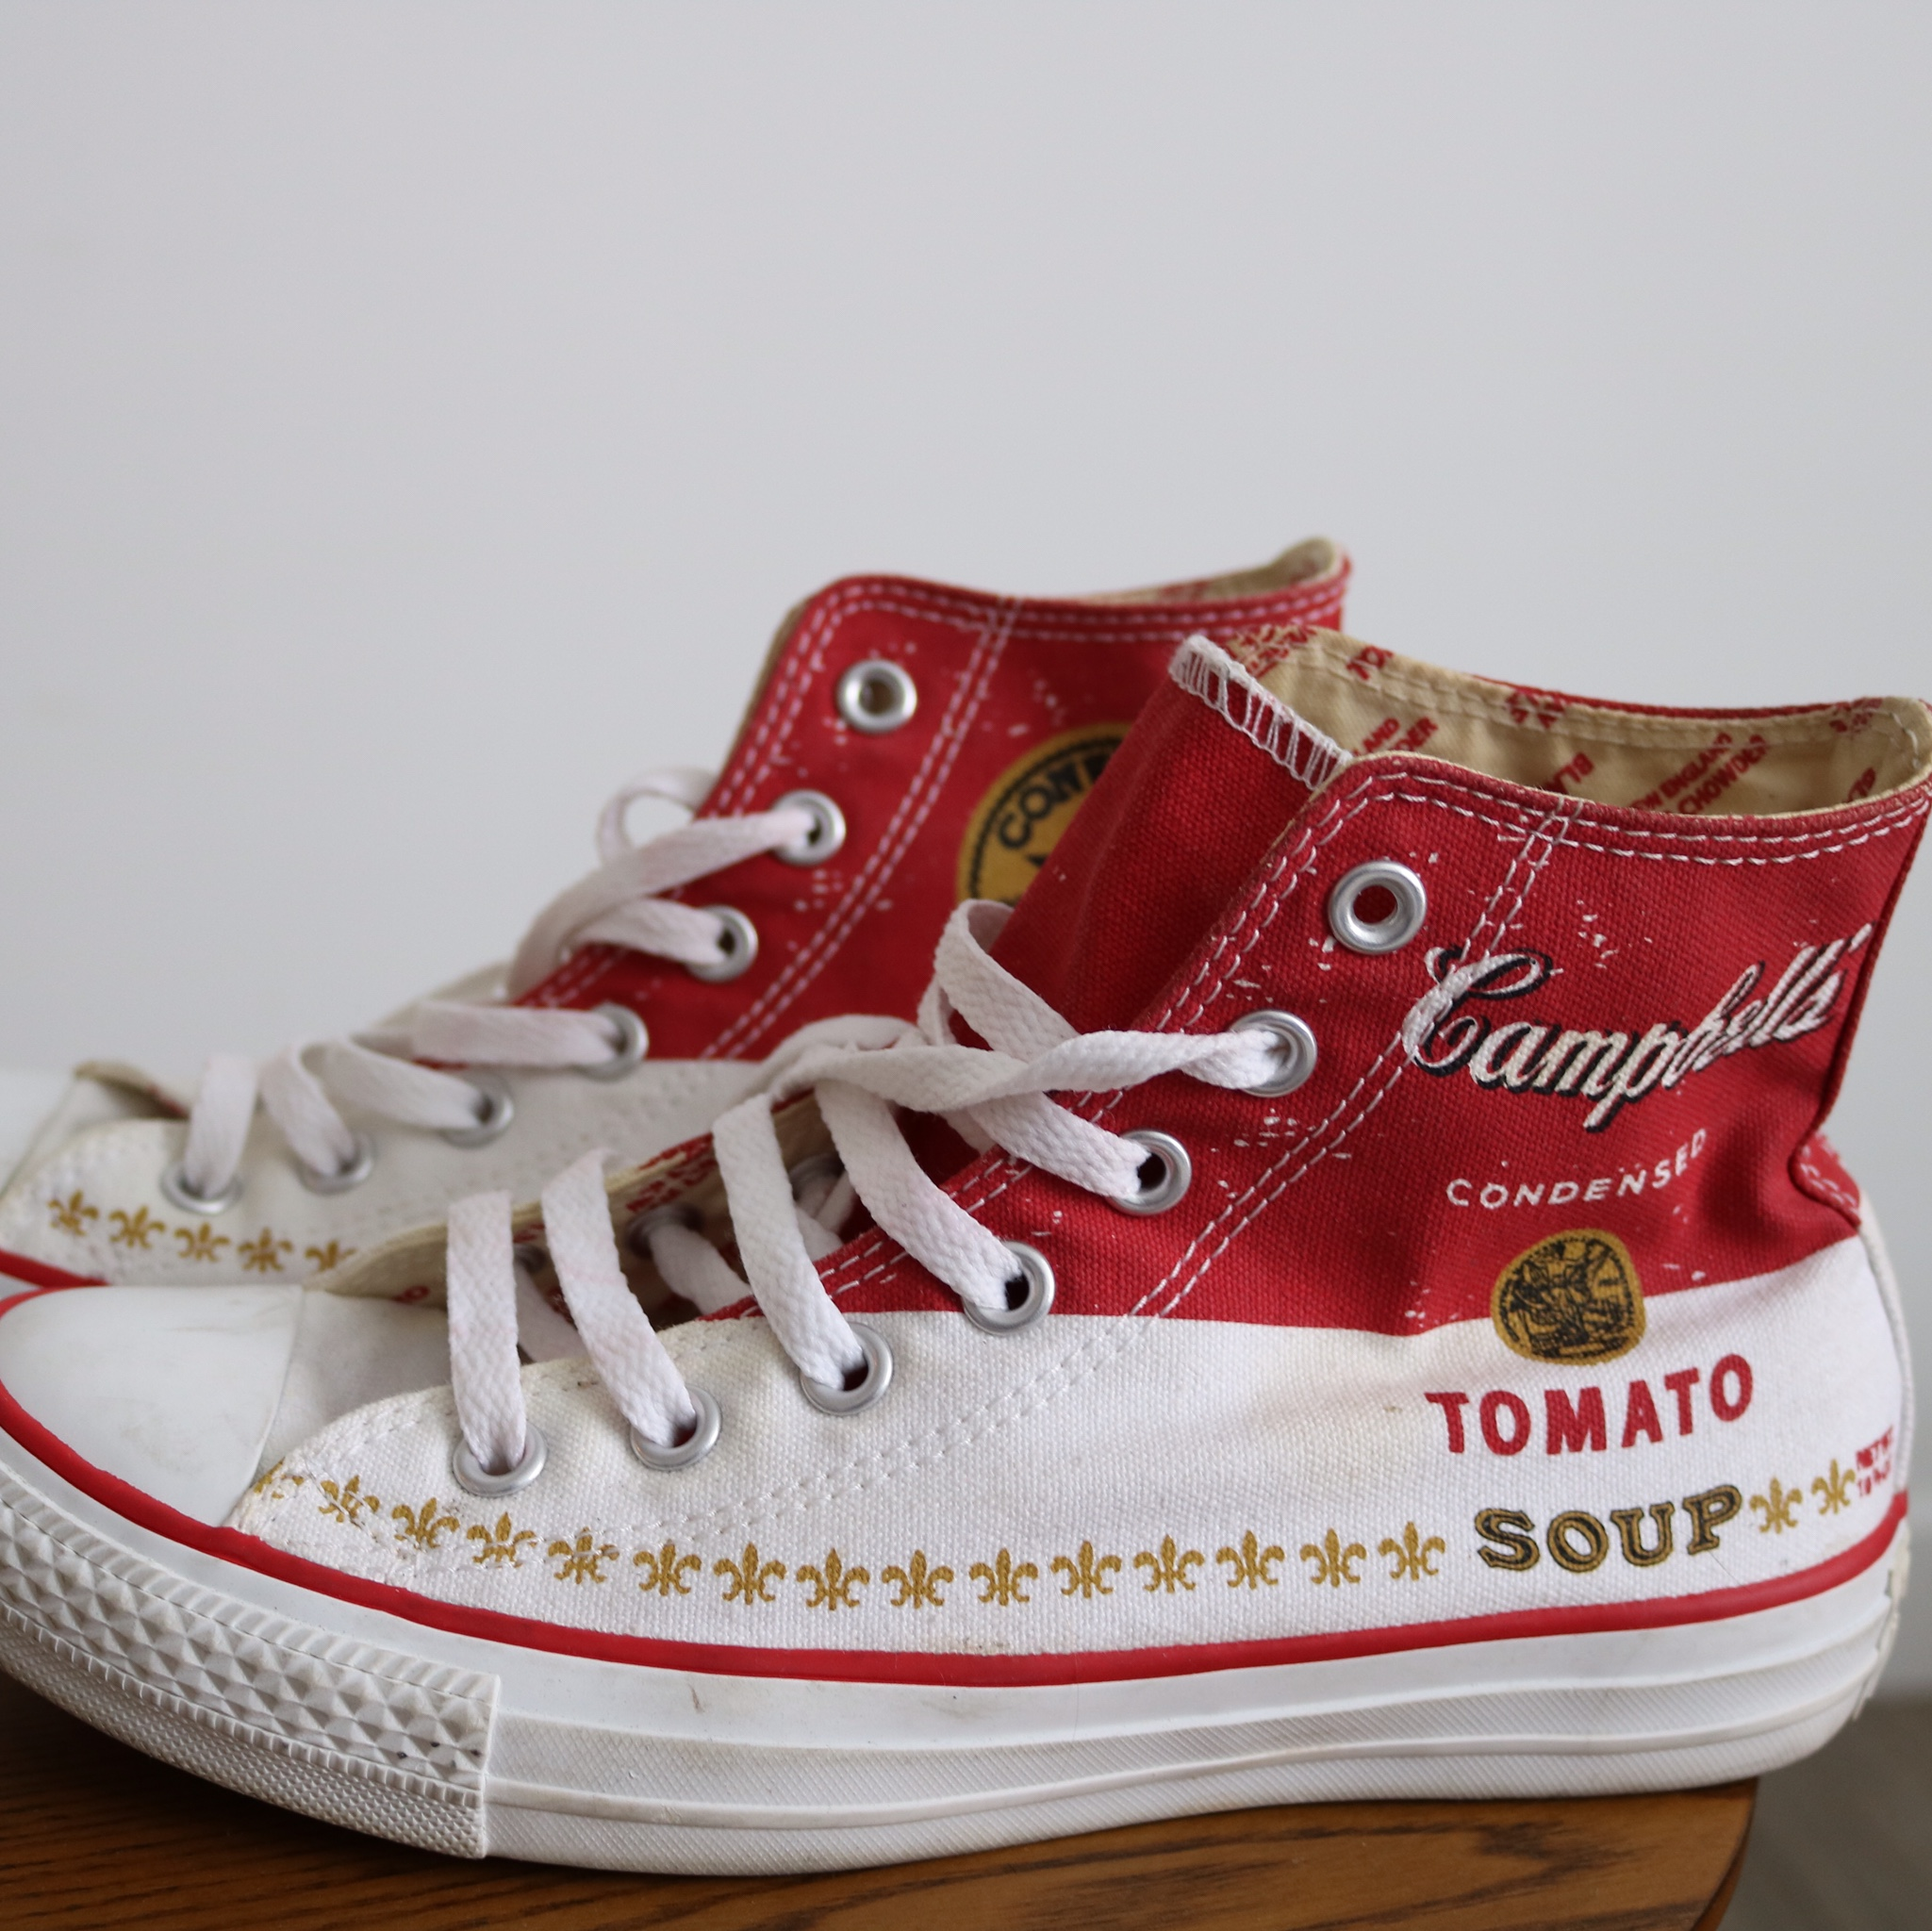 Converse x Andy Warhol Campbell's Soup